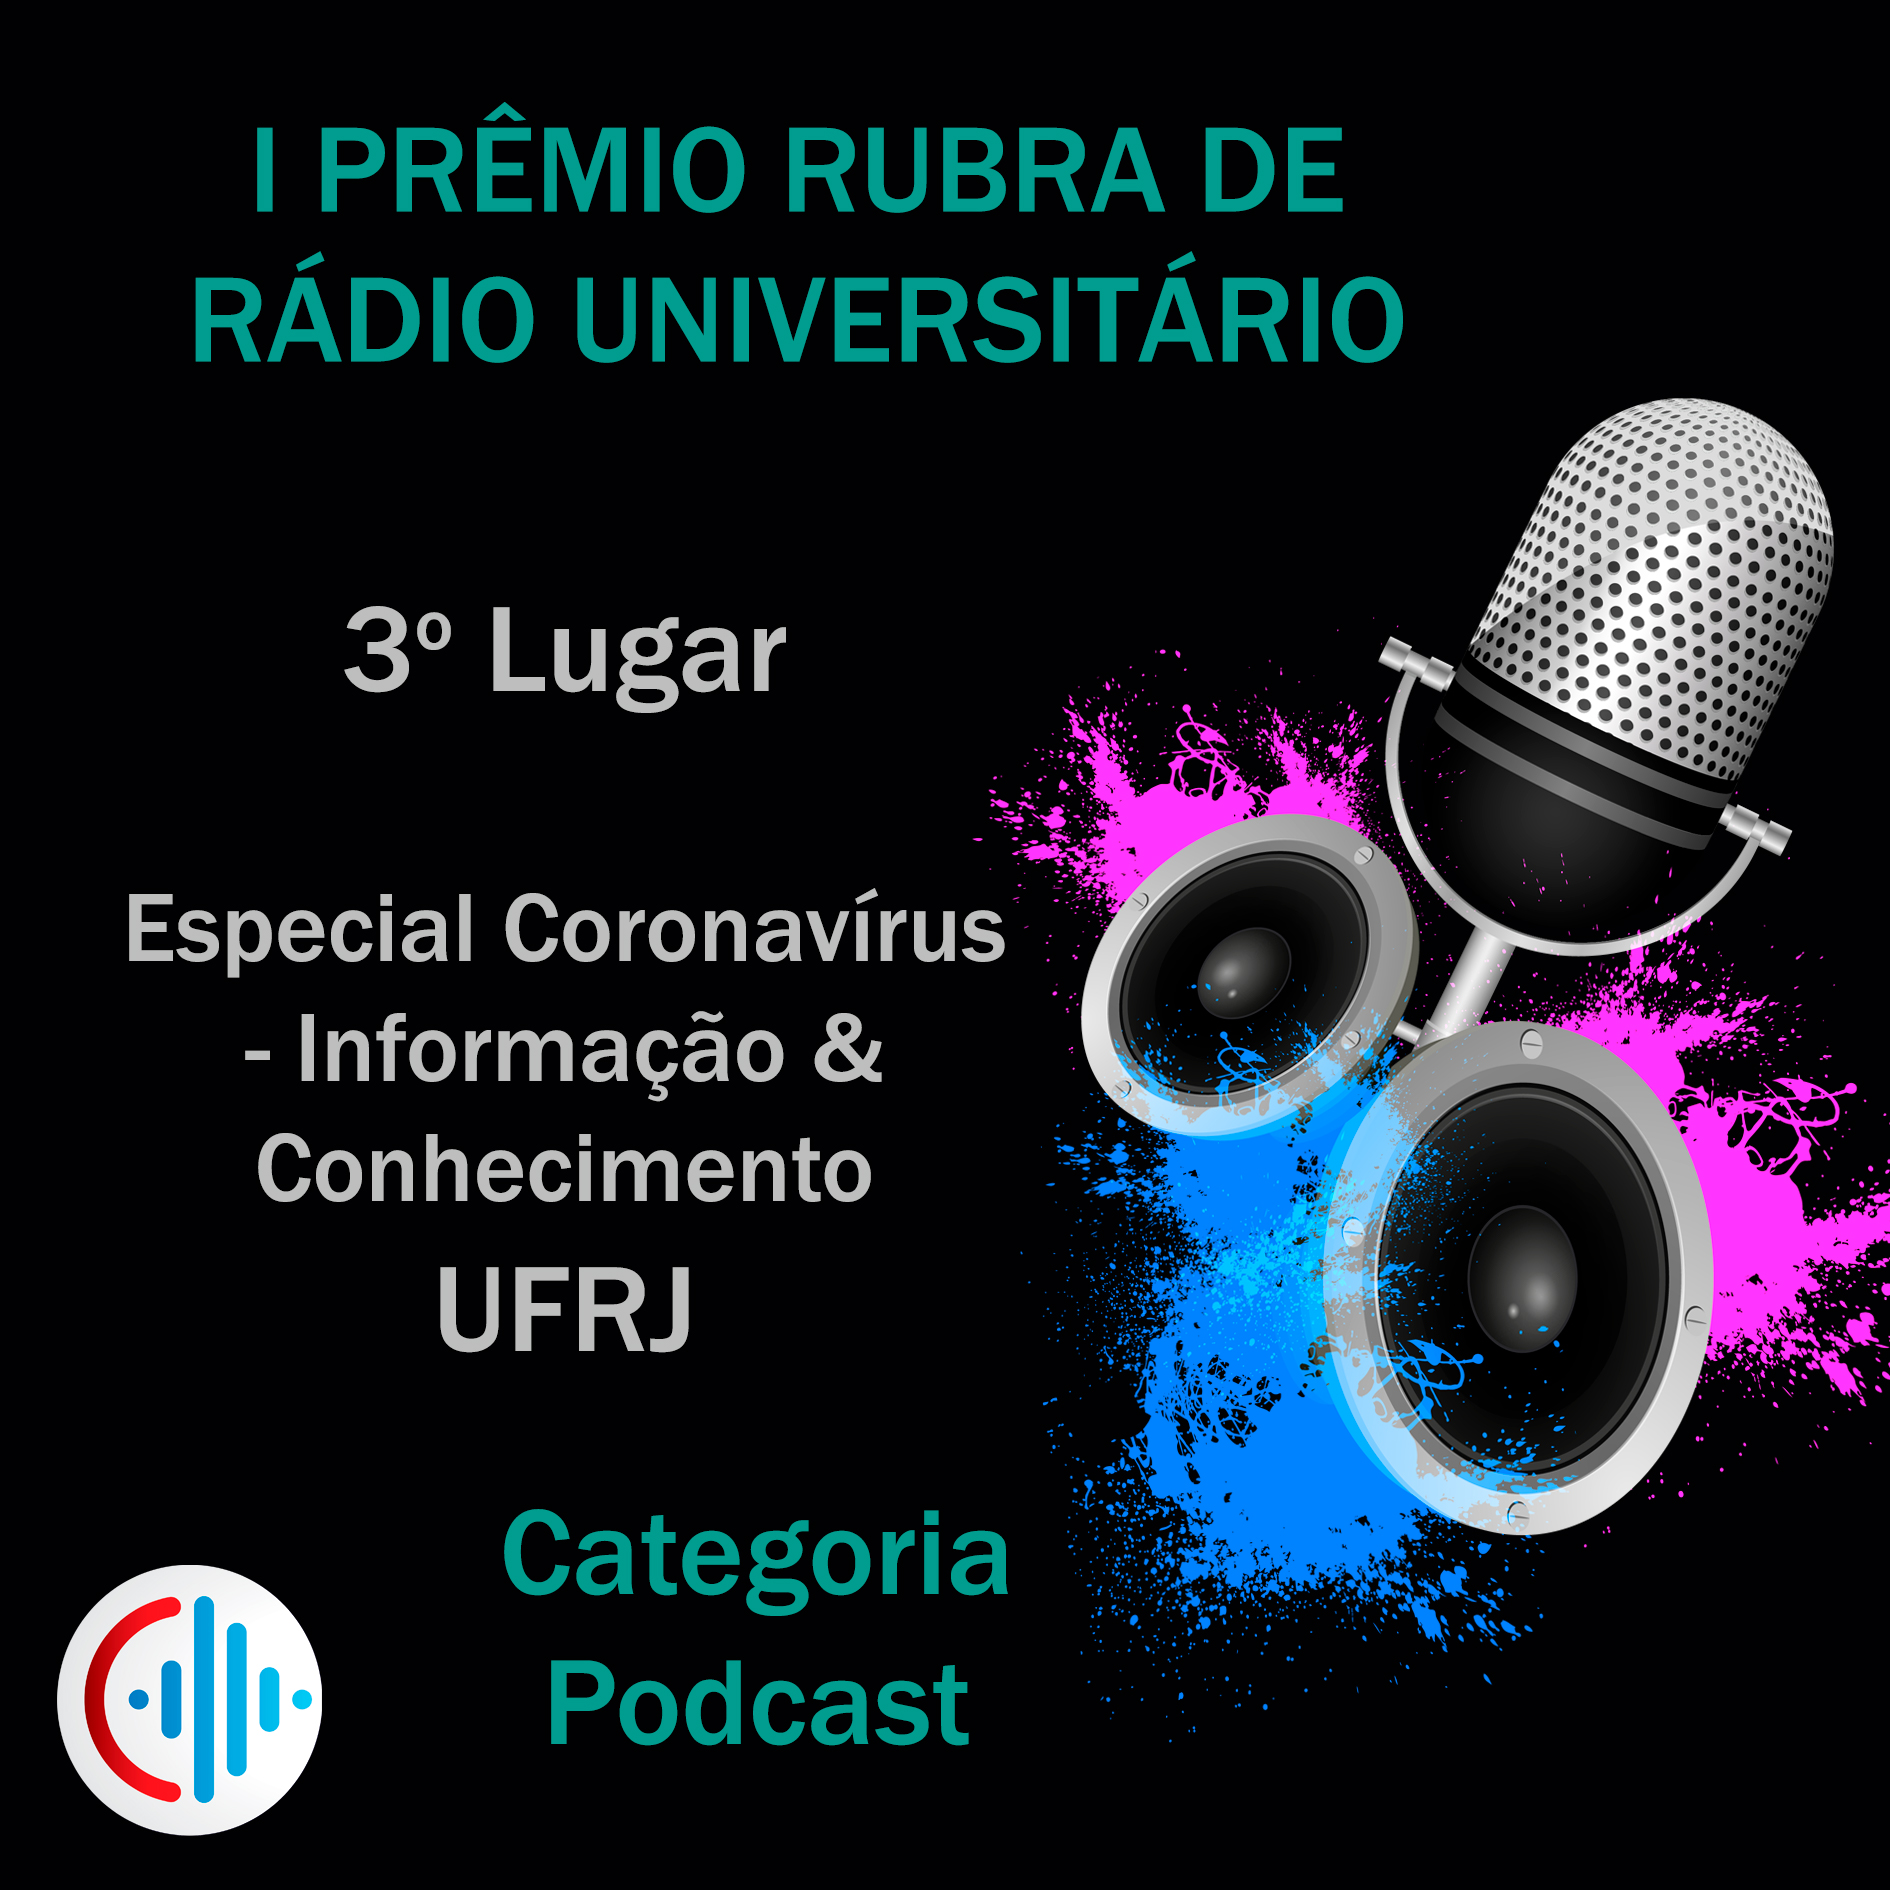 card_3Lugar_Podcast